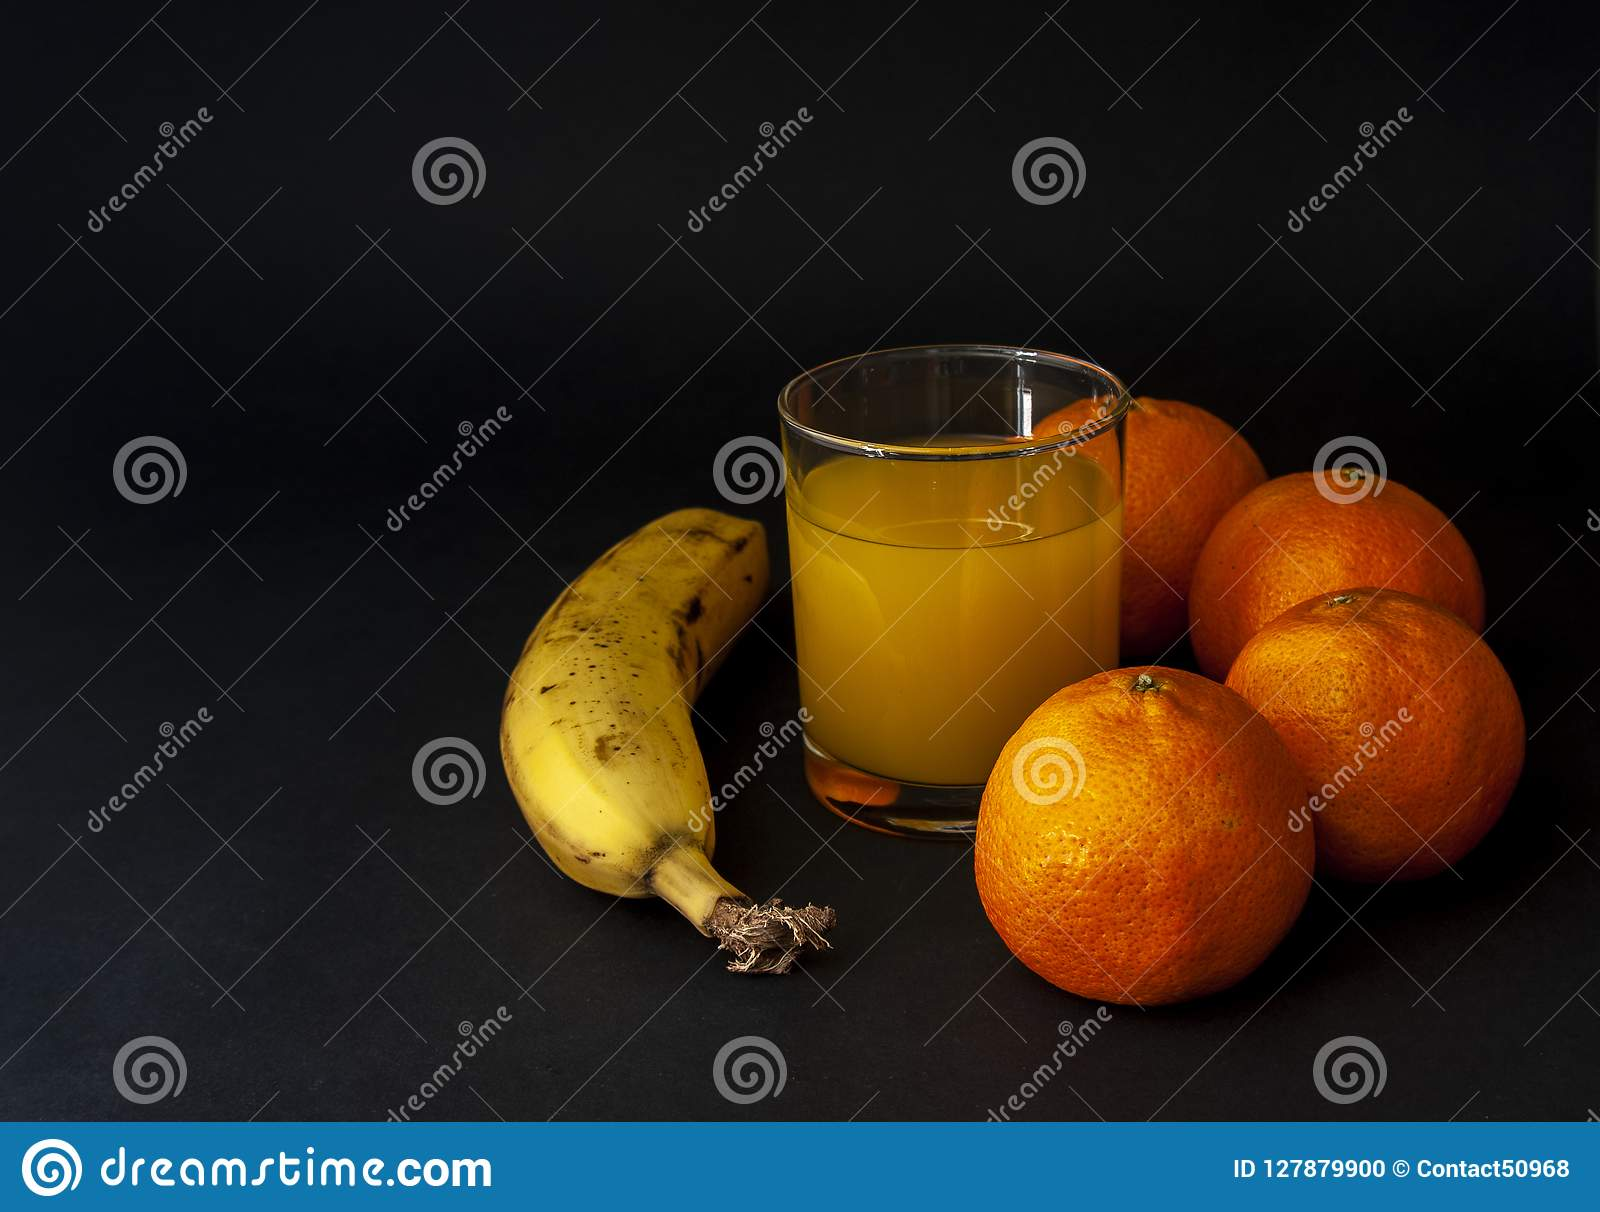 Banana and group of tangerines, mandarins with glass of juice dr